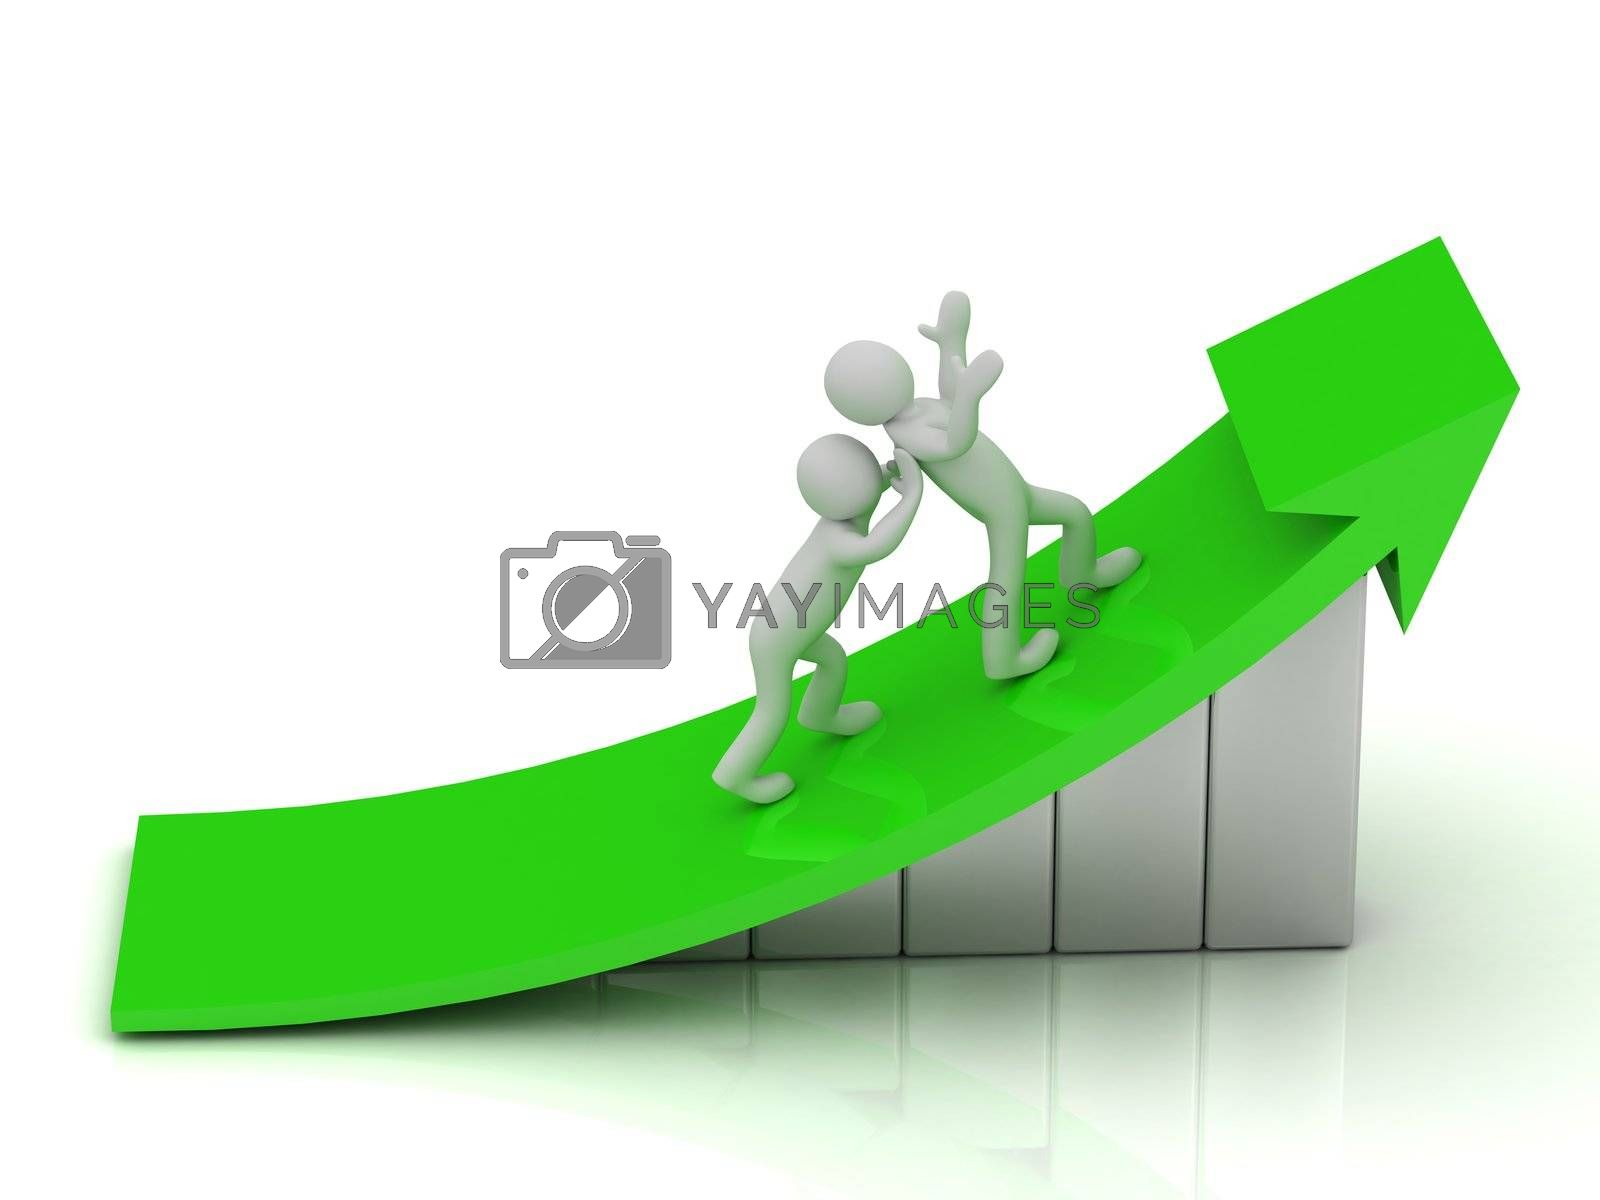 3d small people - promotion and career advancement. Abstract illustration on a white background